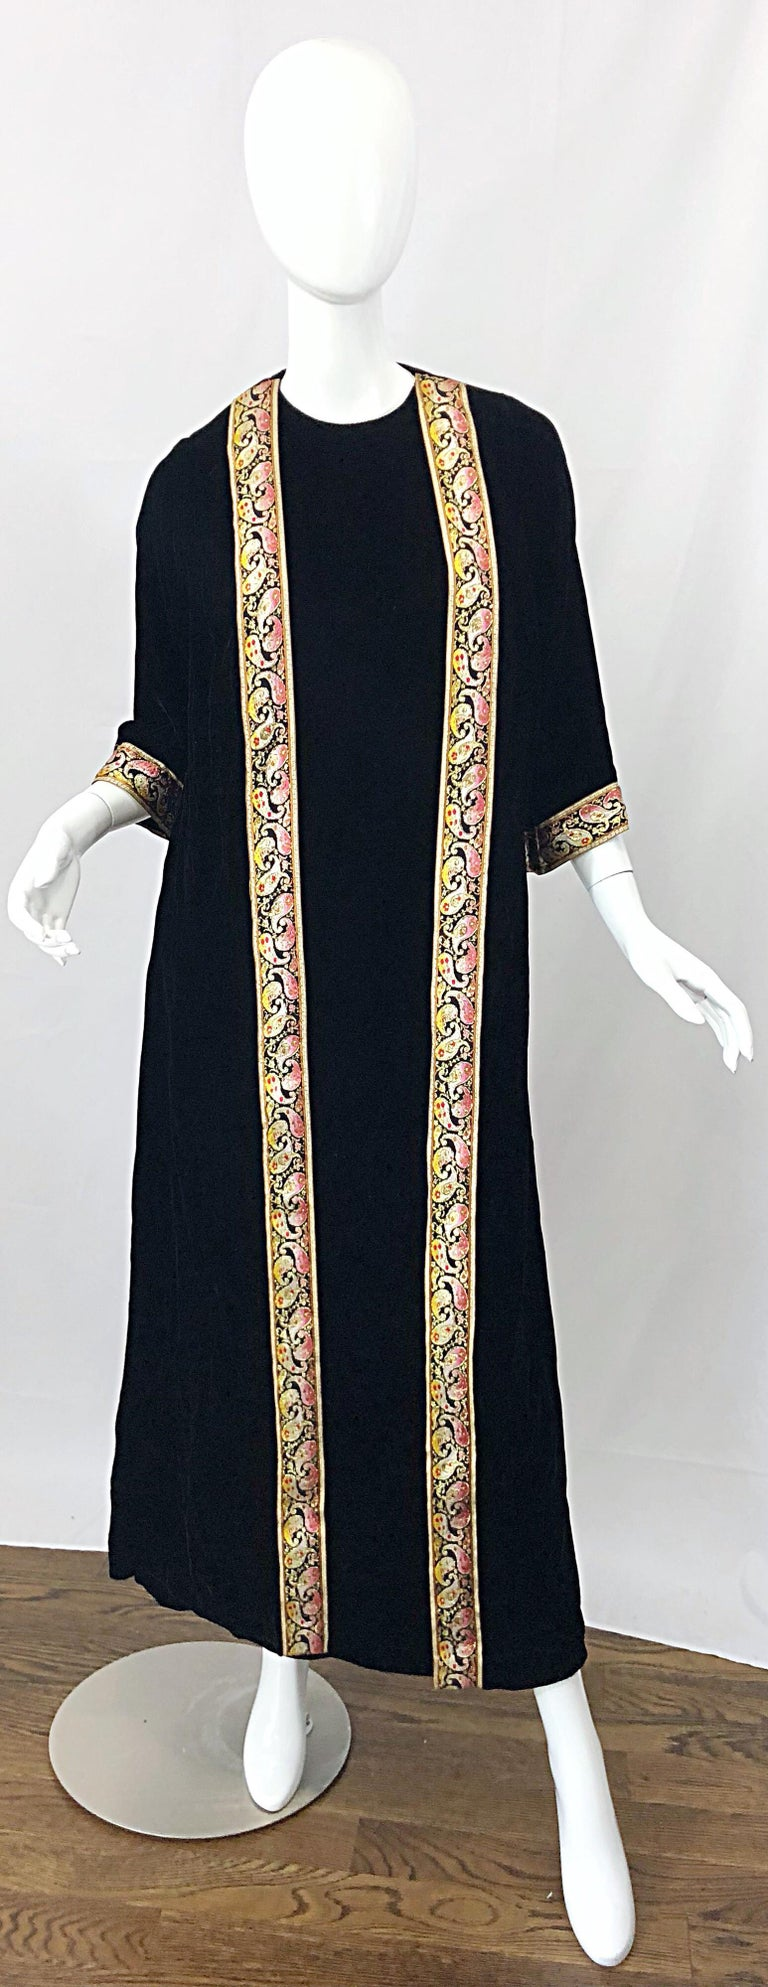 The ultimate 1960s BONWIT TELLER black rayon velvet Moroccan inspired caftan / maxi dress! Features the softest most luxurious lightweight soft rayon velvet. Wrap style, with one side wrapping around the back. Metallic embroidered paisley trim in